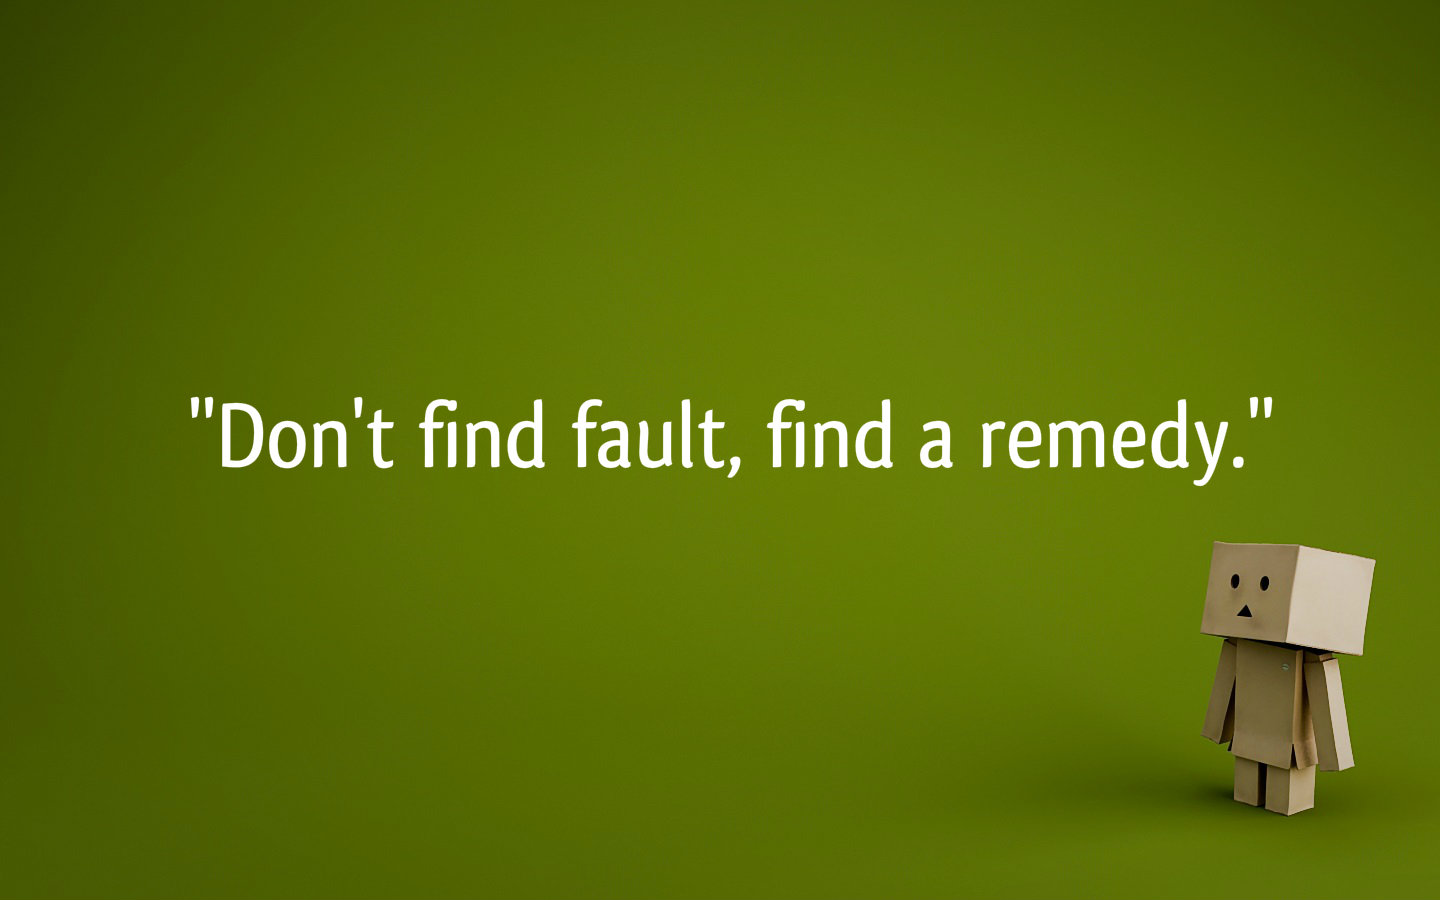 Quotes Wallpapers for the Month of May Daily Thoughts 1440x900